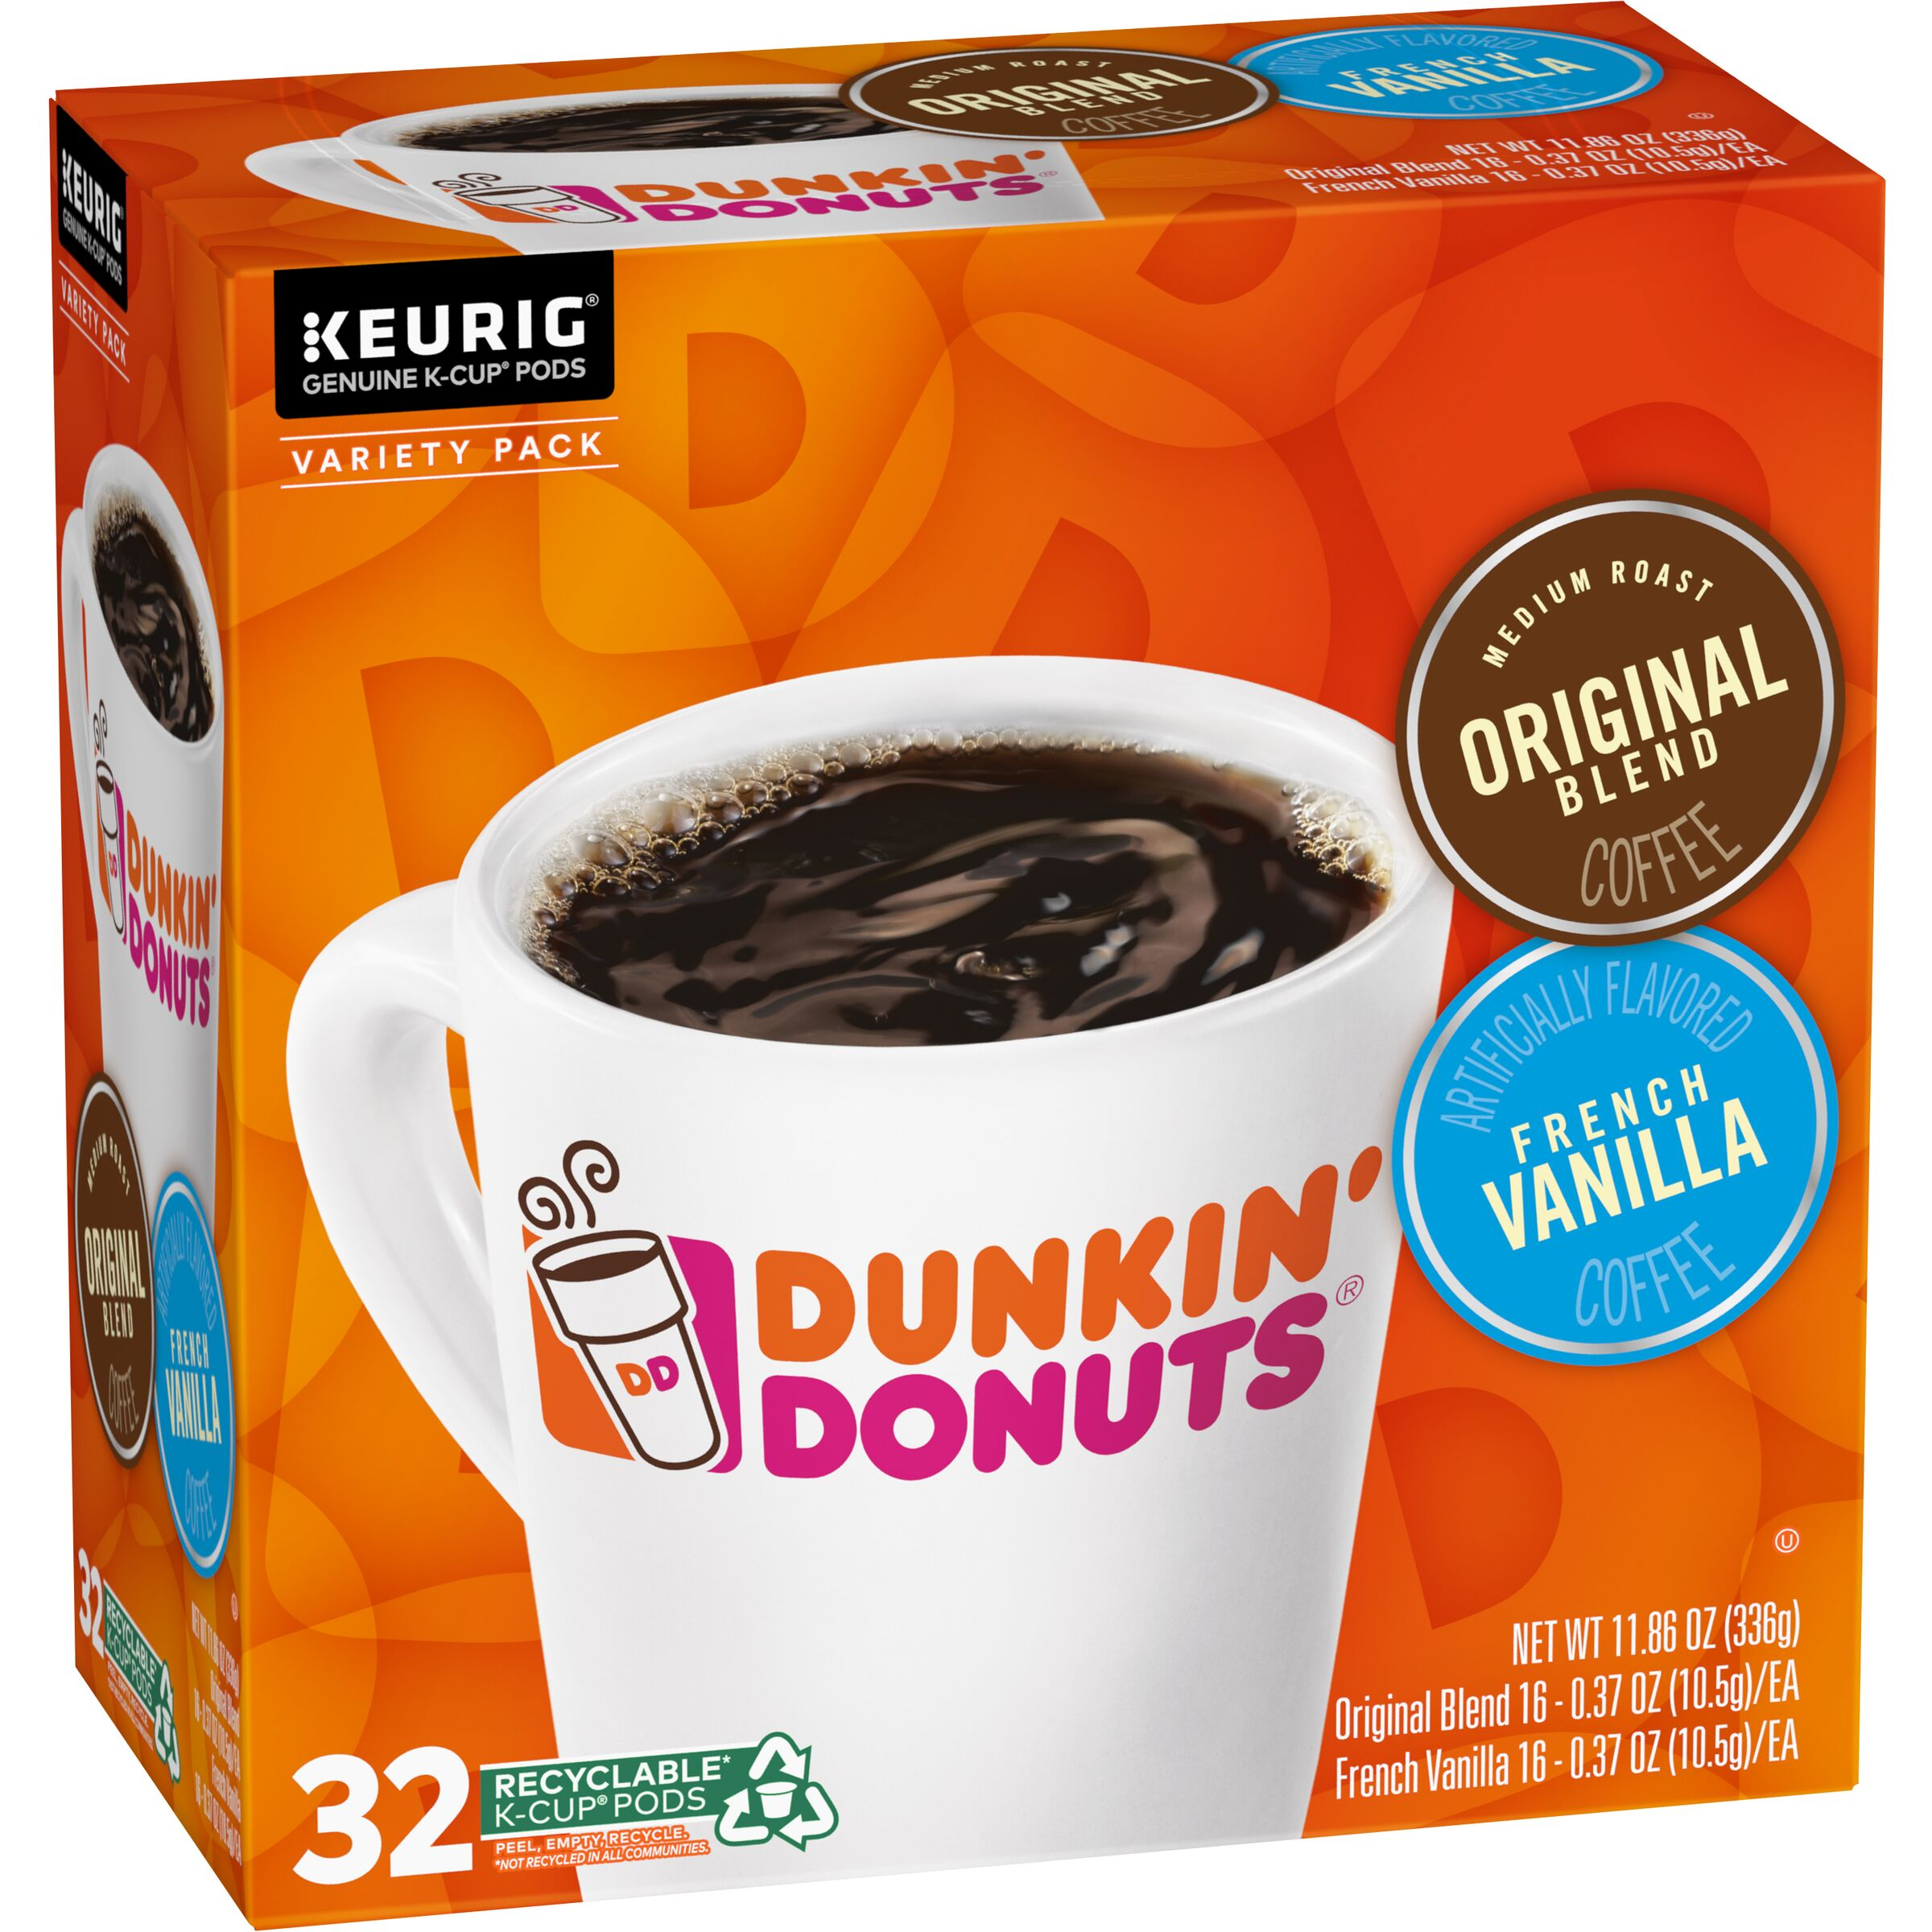 Dunkin' Donuts<sup>®</sup>  Original Blend & French Vanilla Variety Pack K-Cup® Pods, 32 Count